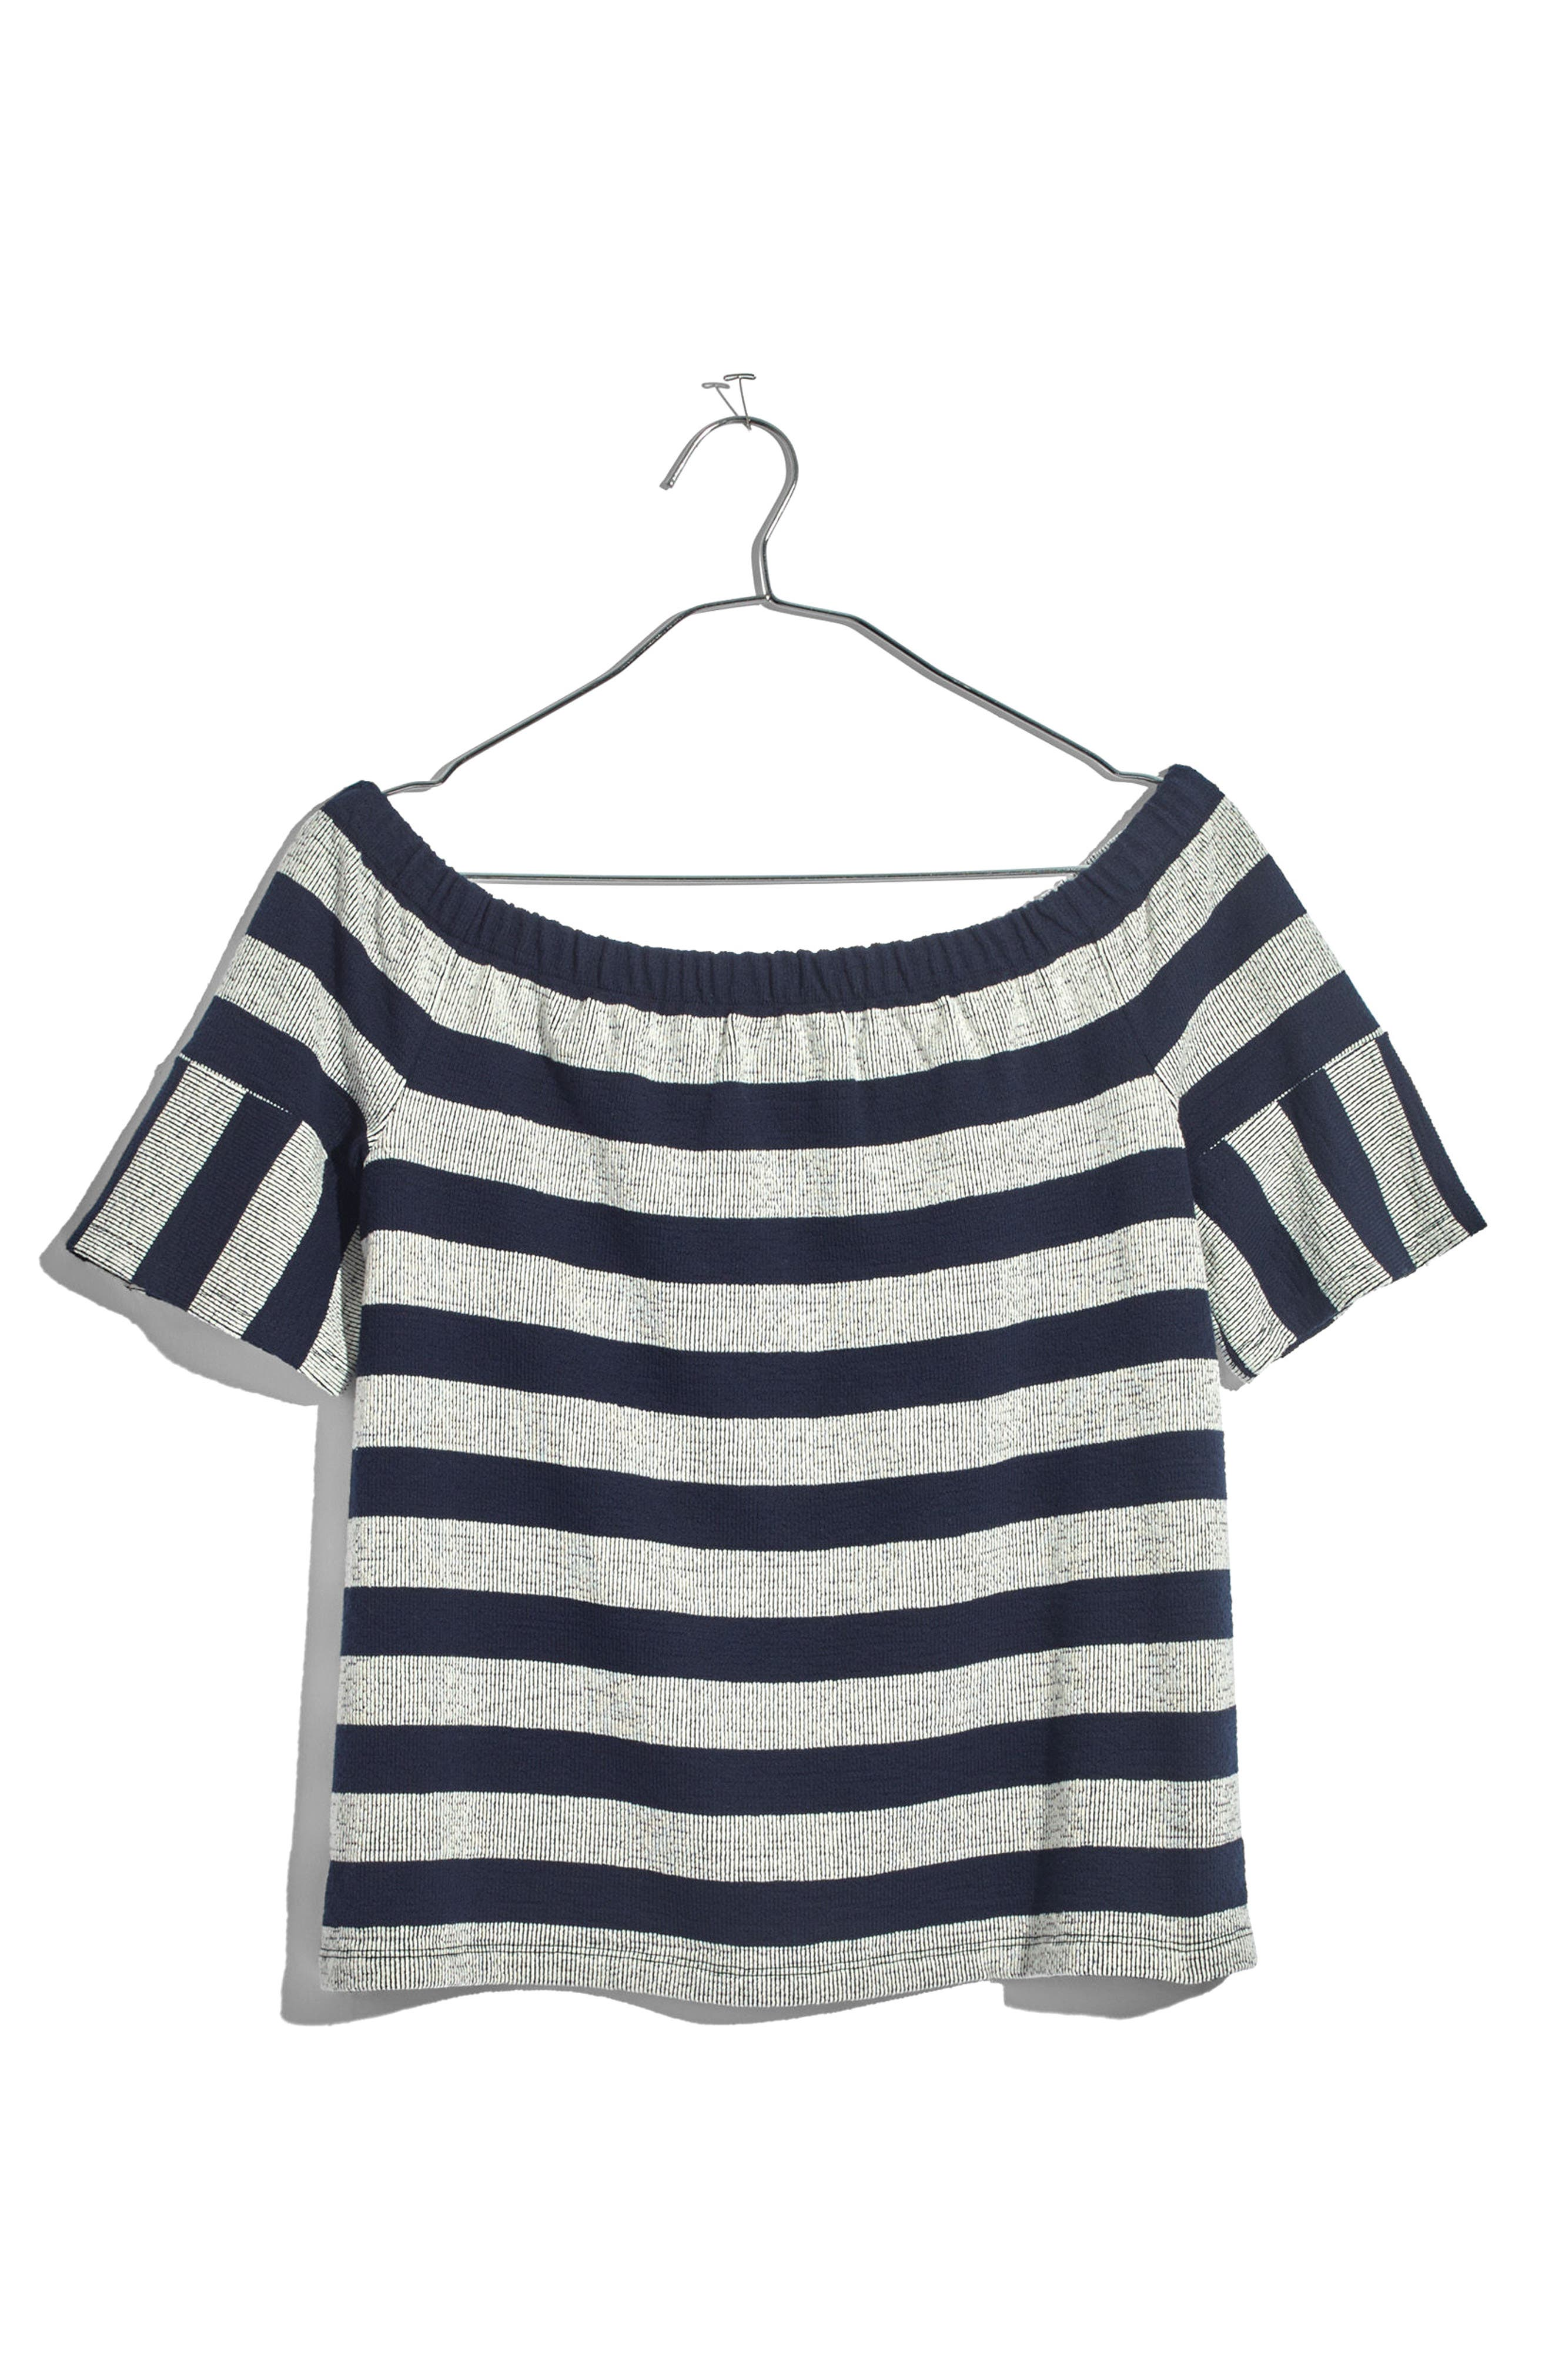 Stripe Off the Shoulder Texture Top,                             Alternate thumbnail 4, color,                             Deep Navy